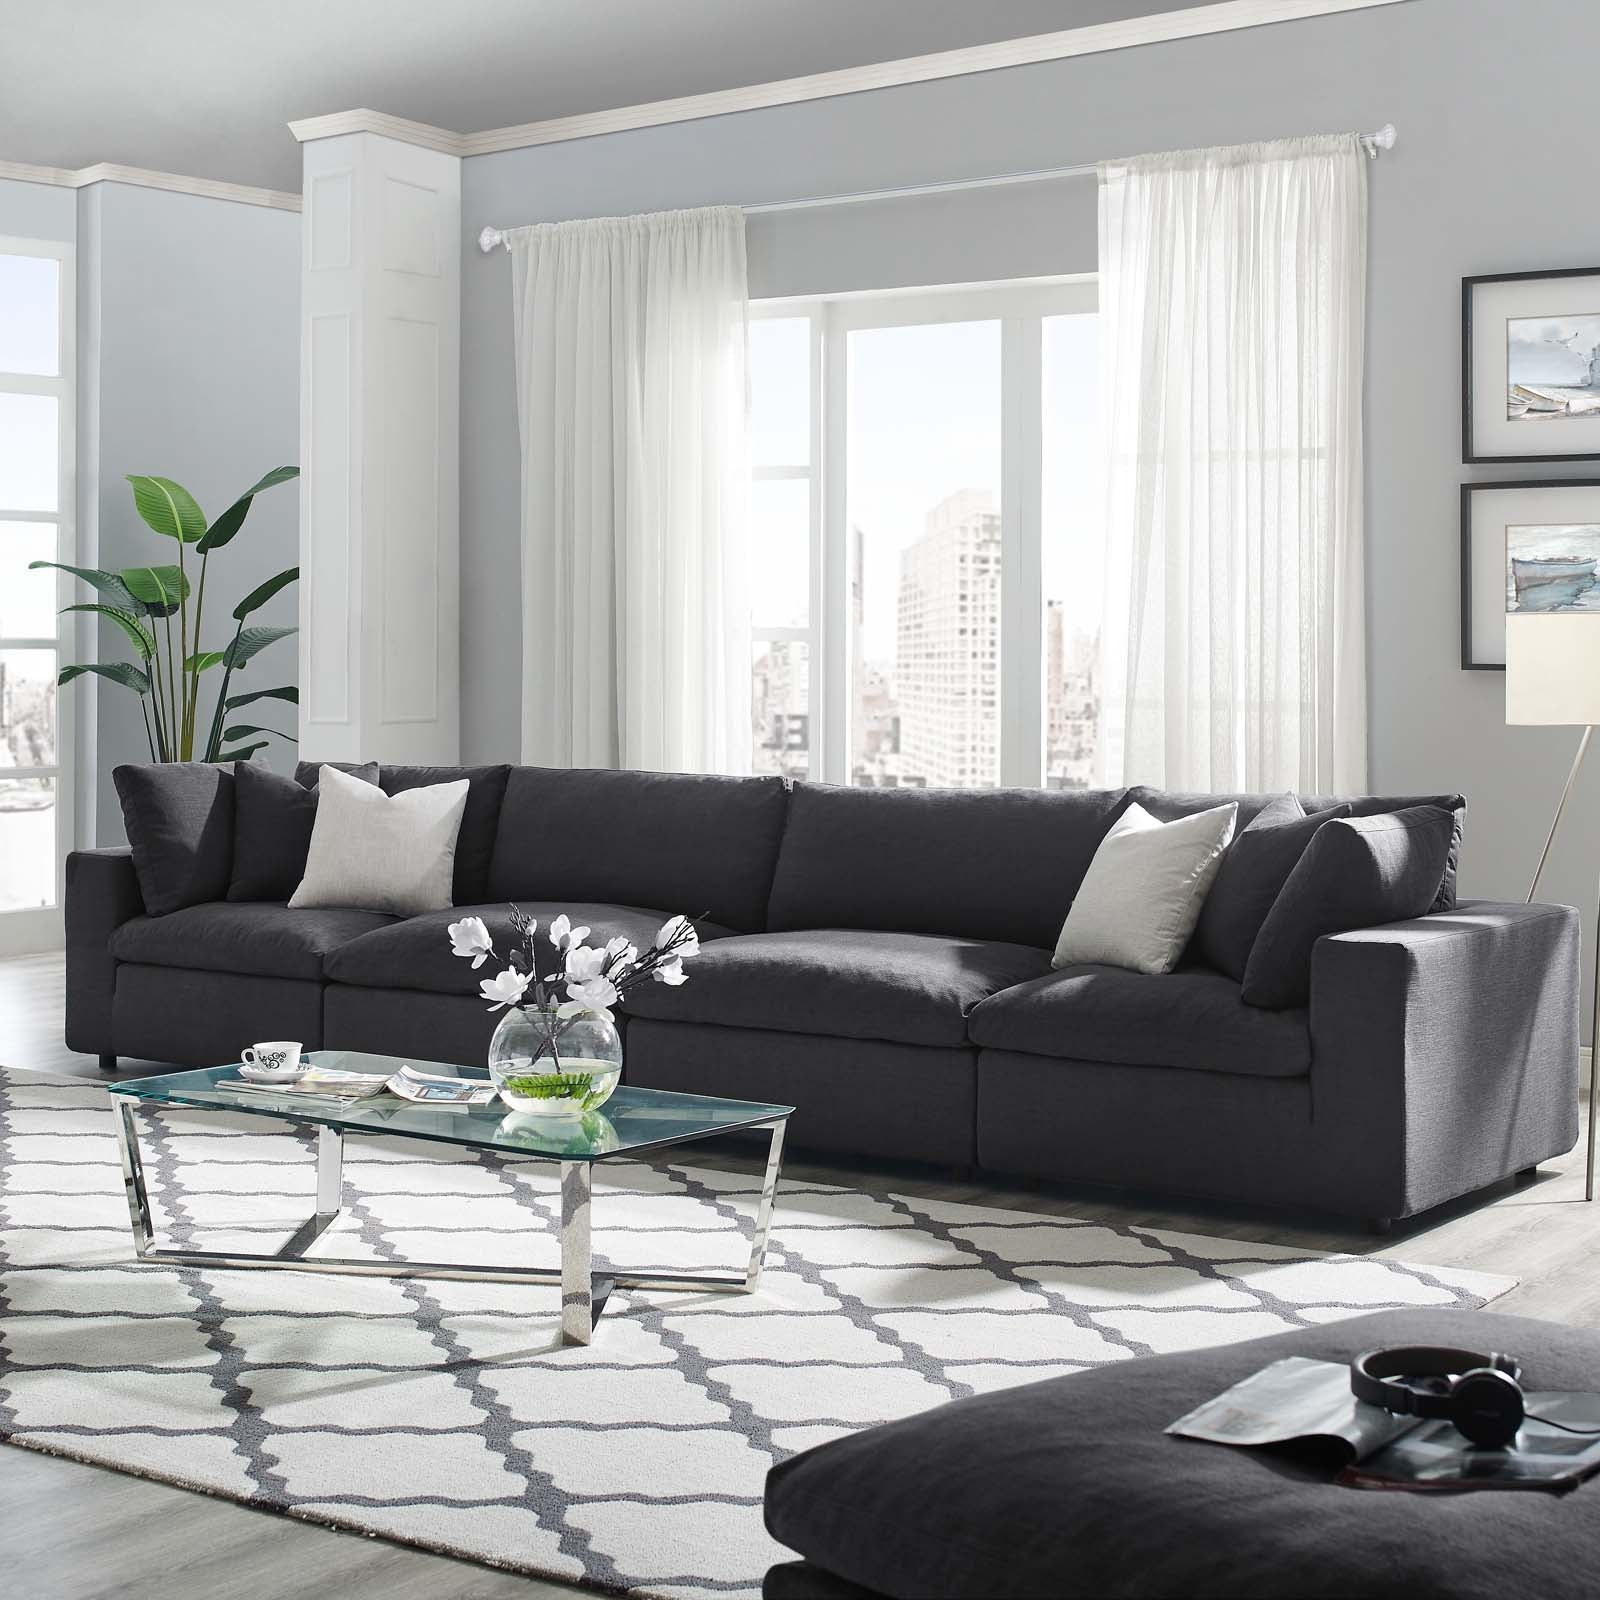 Modway Commix Down Filled Overstuffed 4 Piece Sectional Sofa Set